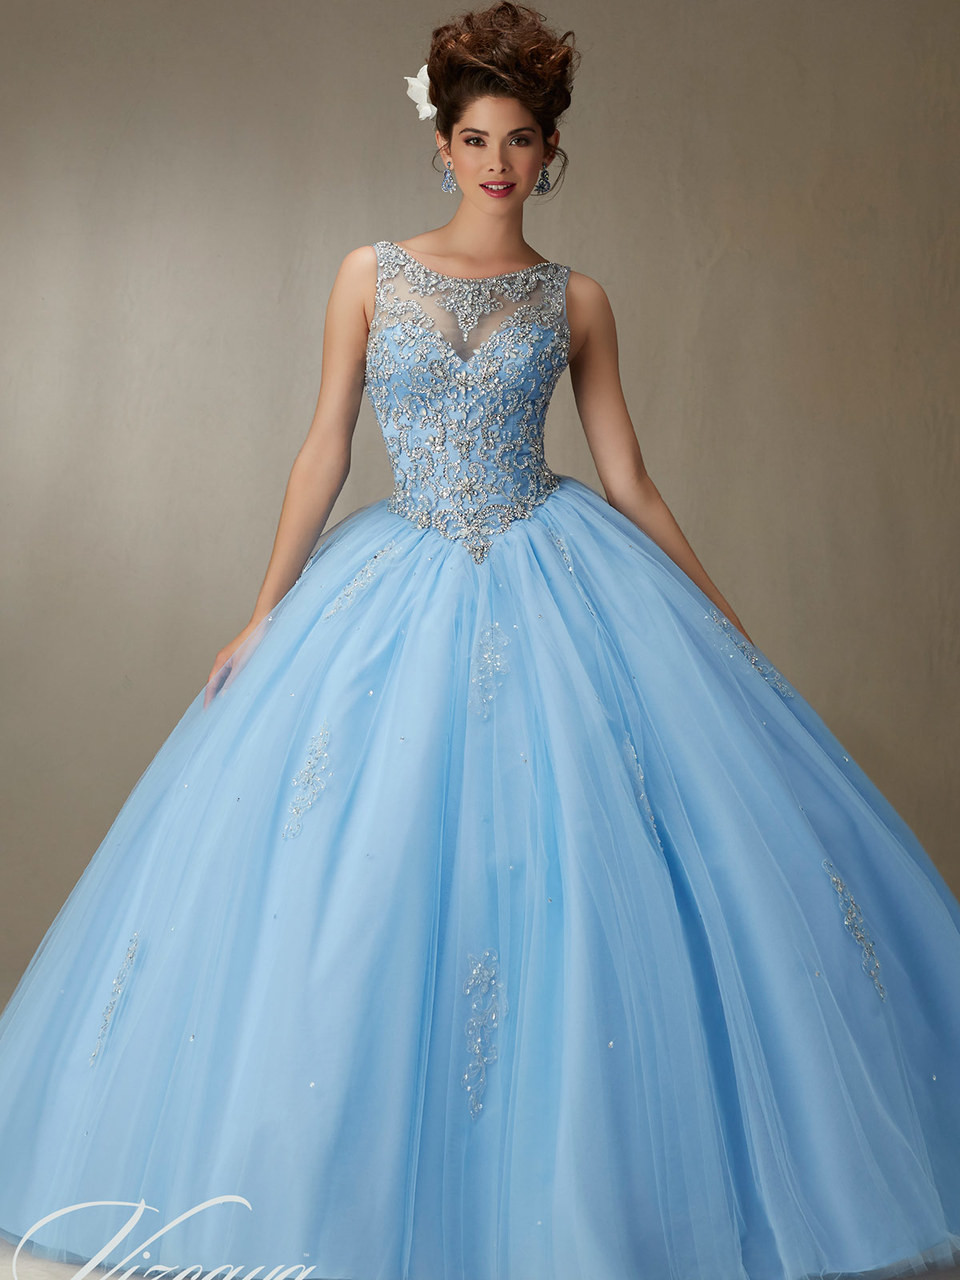 acb954c0a83 Mori Lee Quinceanera Dress 89135 - AByte Computer Solutions